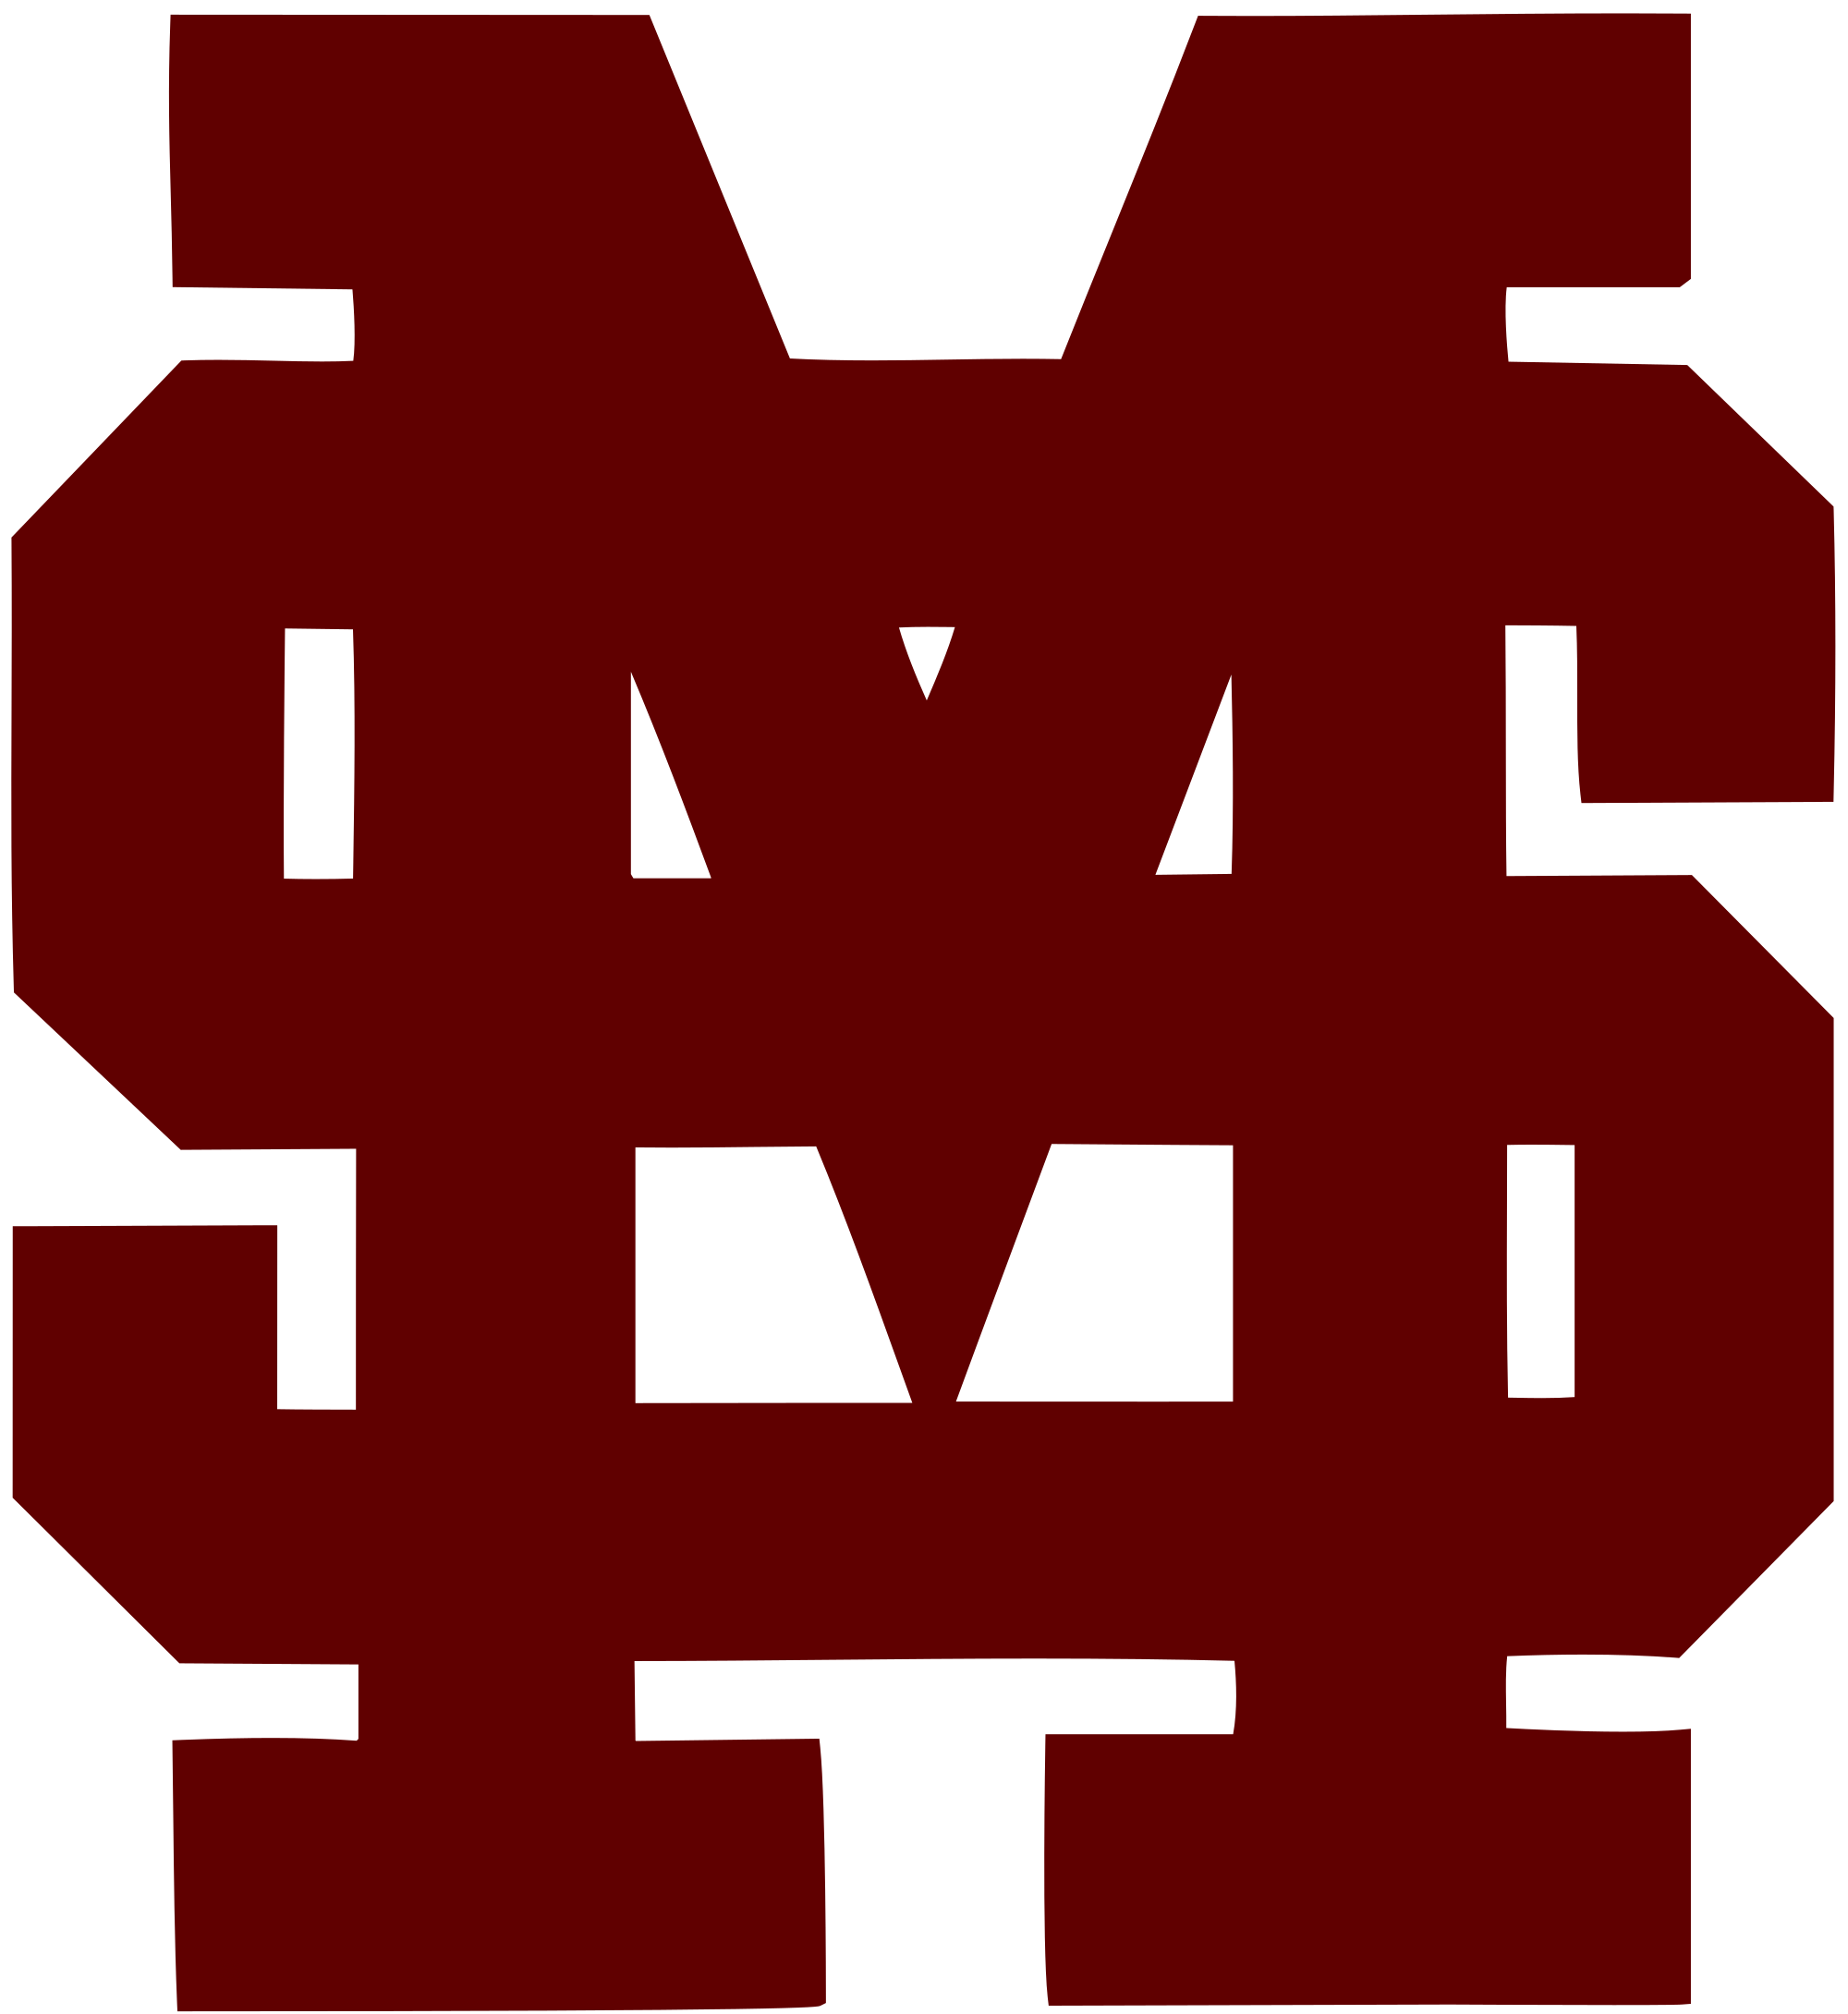 Bulldog baseball clipart clip royalty free File:Mississippi State Bulldogs baseball logo.svg - Wikimedia Commons clip royalty free